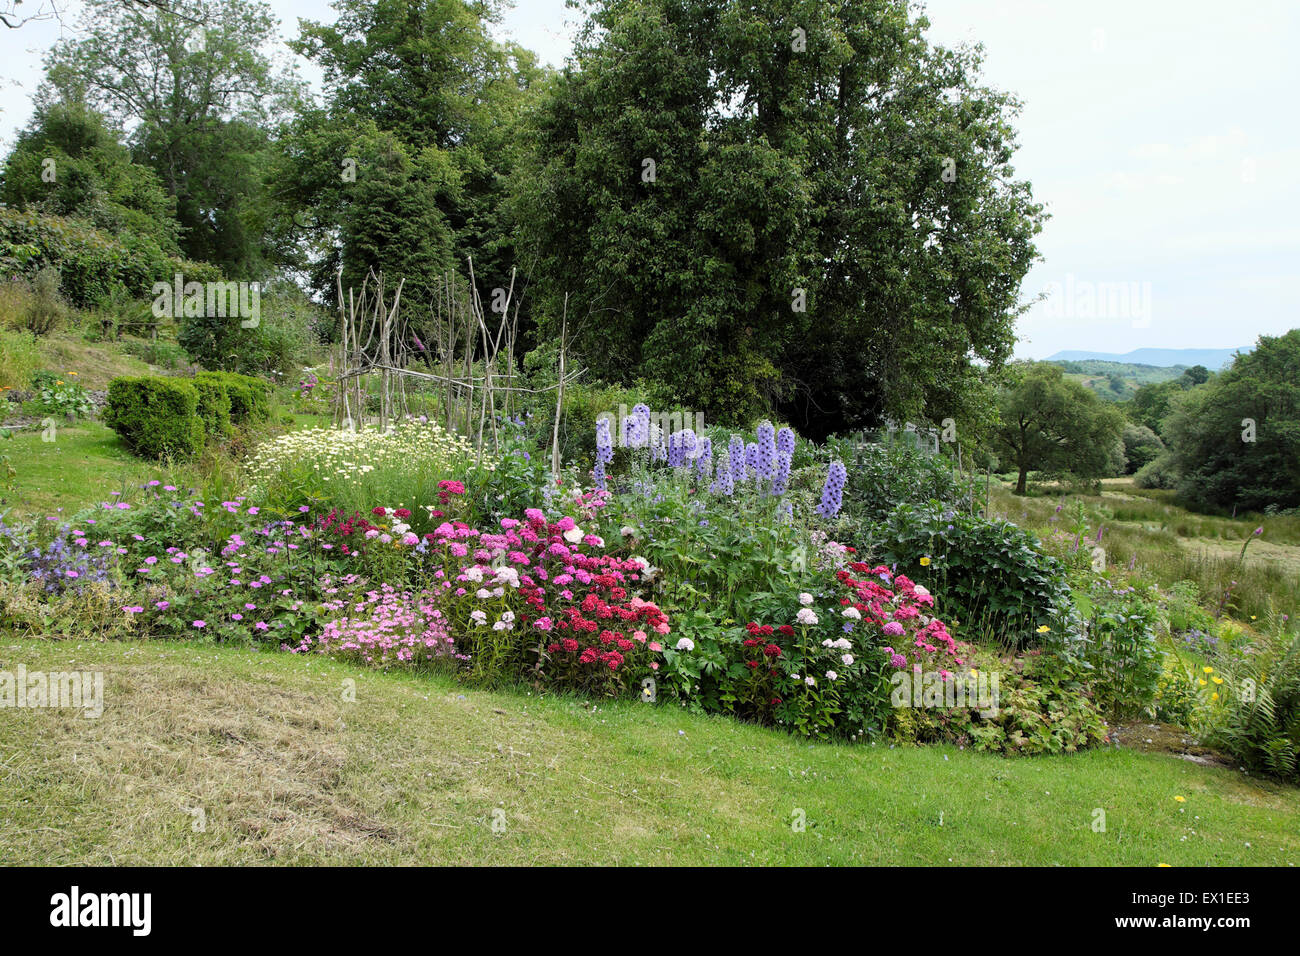 Rural garden herbaceous border with view of the countryside in Carmarthenshire  Wales UK  KATHY DEWITT - Stock Image